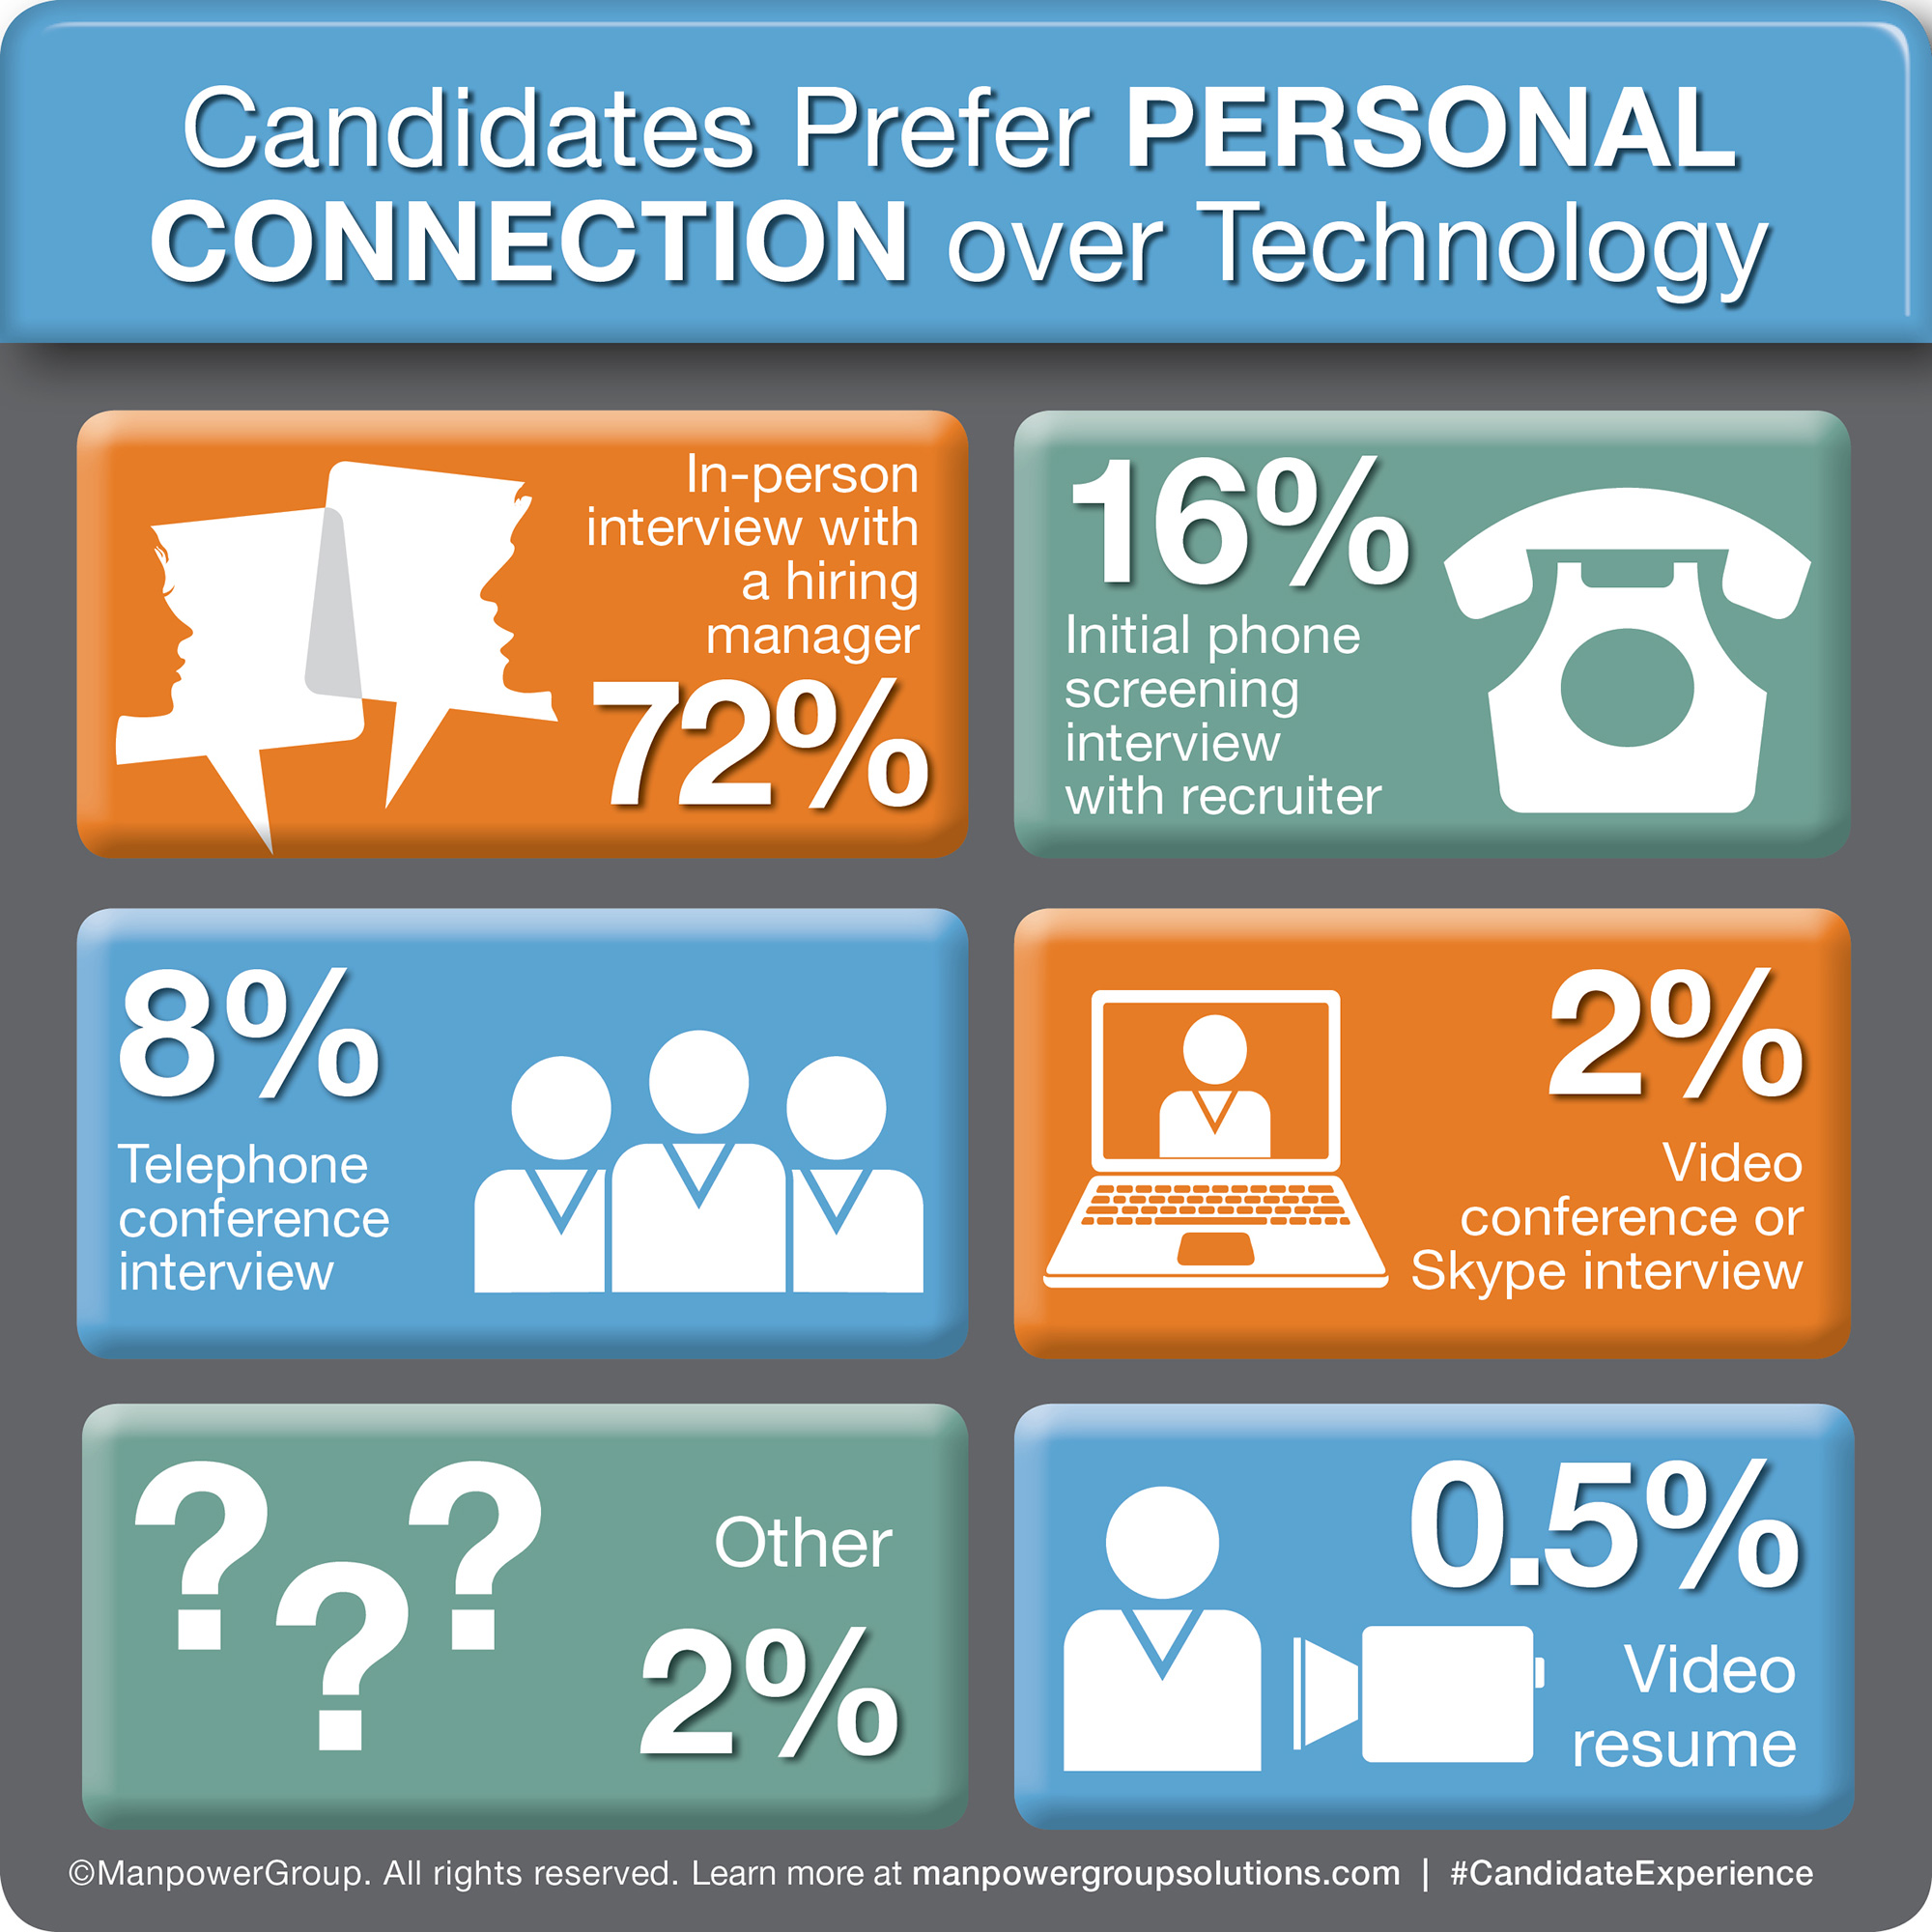 Despite rapids technological advances, job-seekers prefer the tried, but true methods of in-person and phone interviews. 9 in 10 wait for recruiter's call to get engaged.